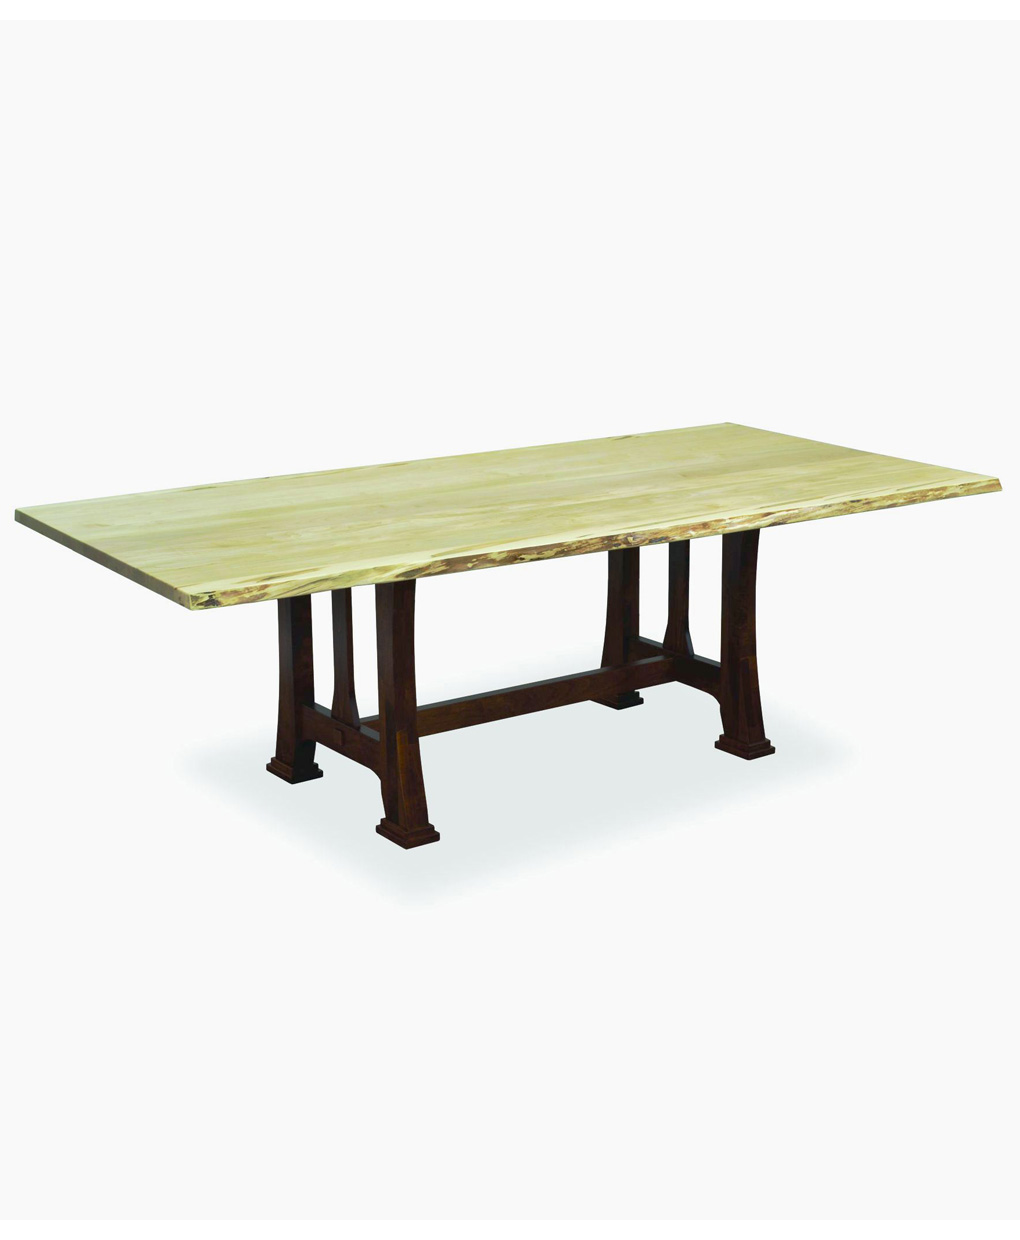 Shop Dining Table Live Edge Tables Custer Dining Table With Live Edge